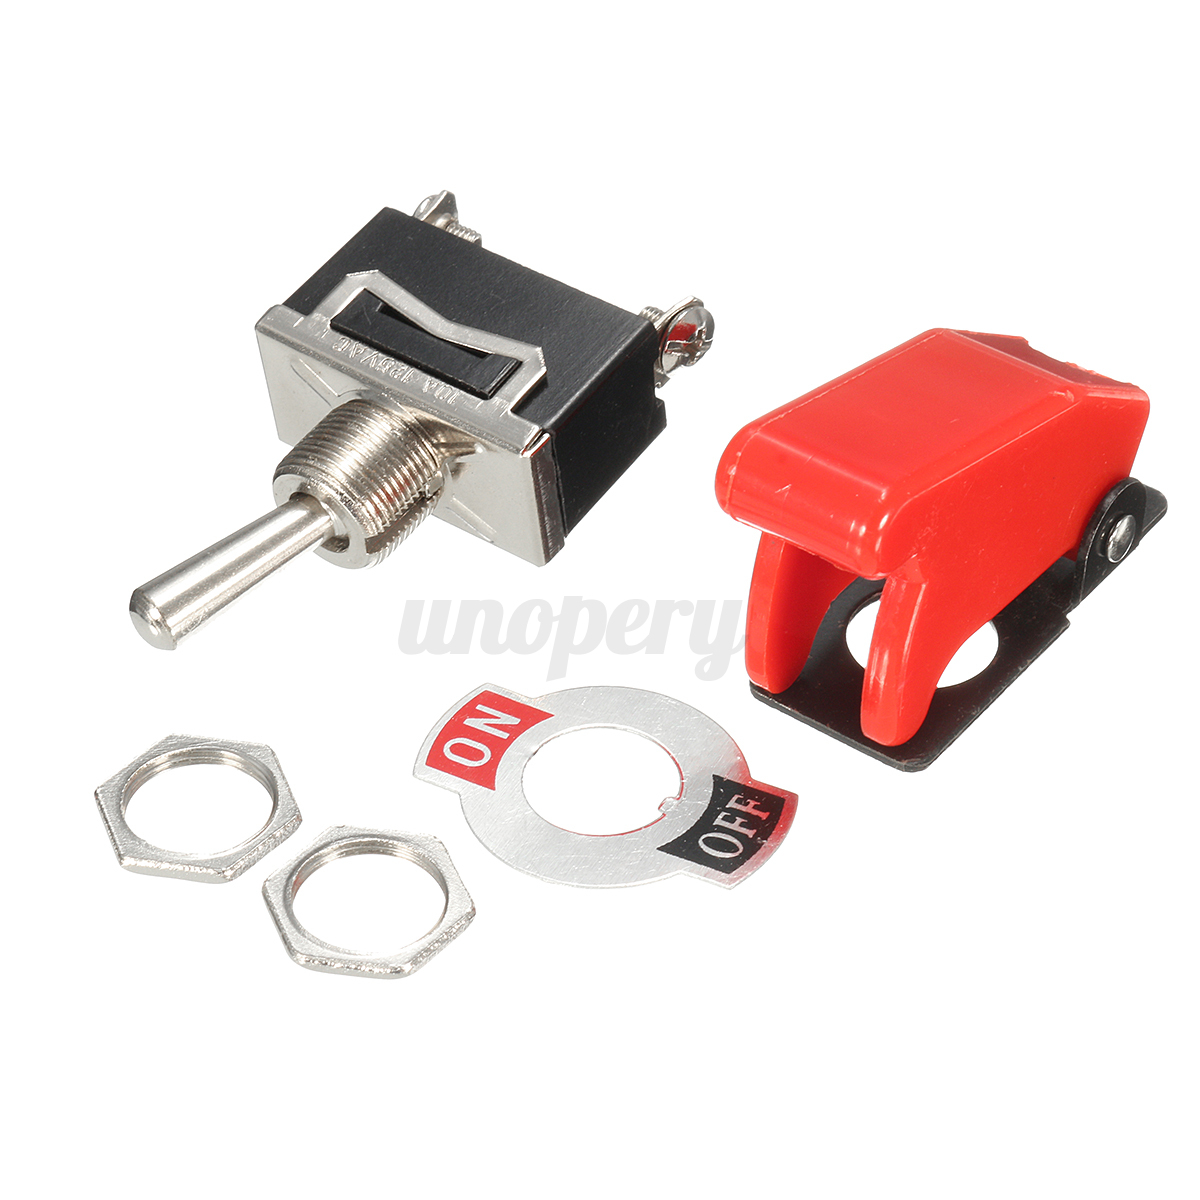 Light Duty Lever Controls : Heavy duty on off toggle switch metal lever car dash light